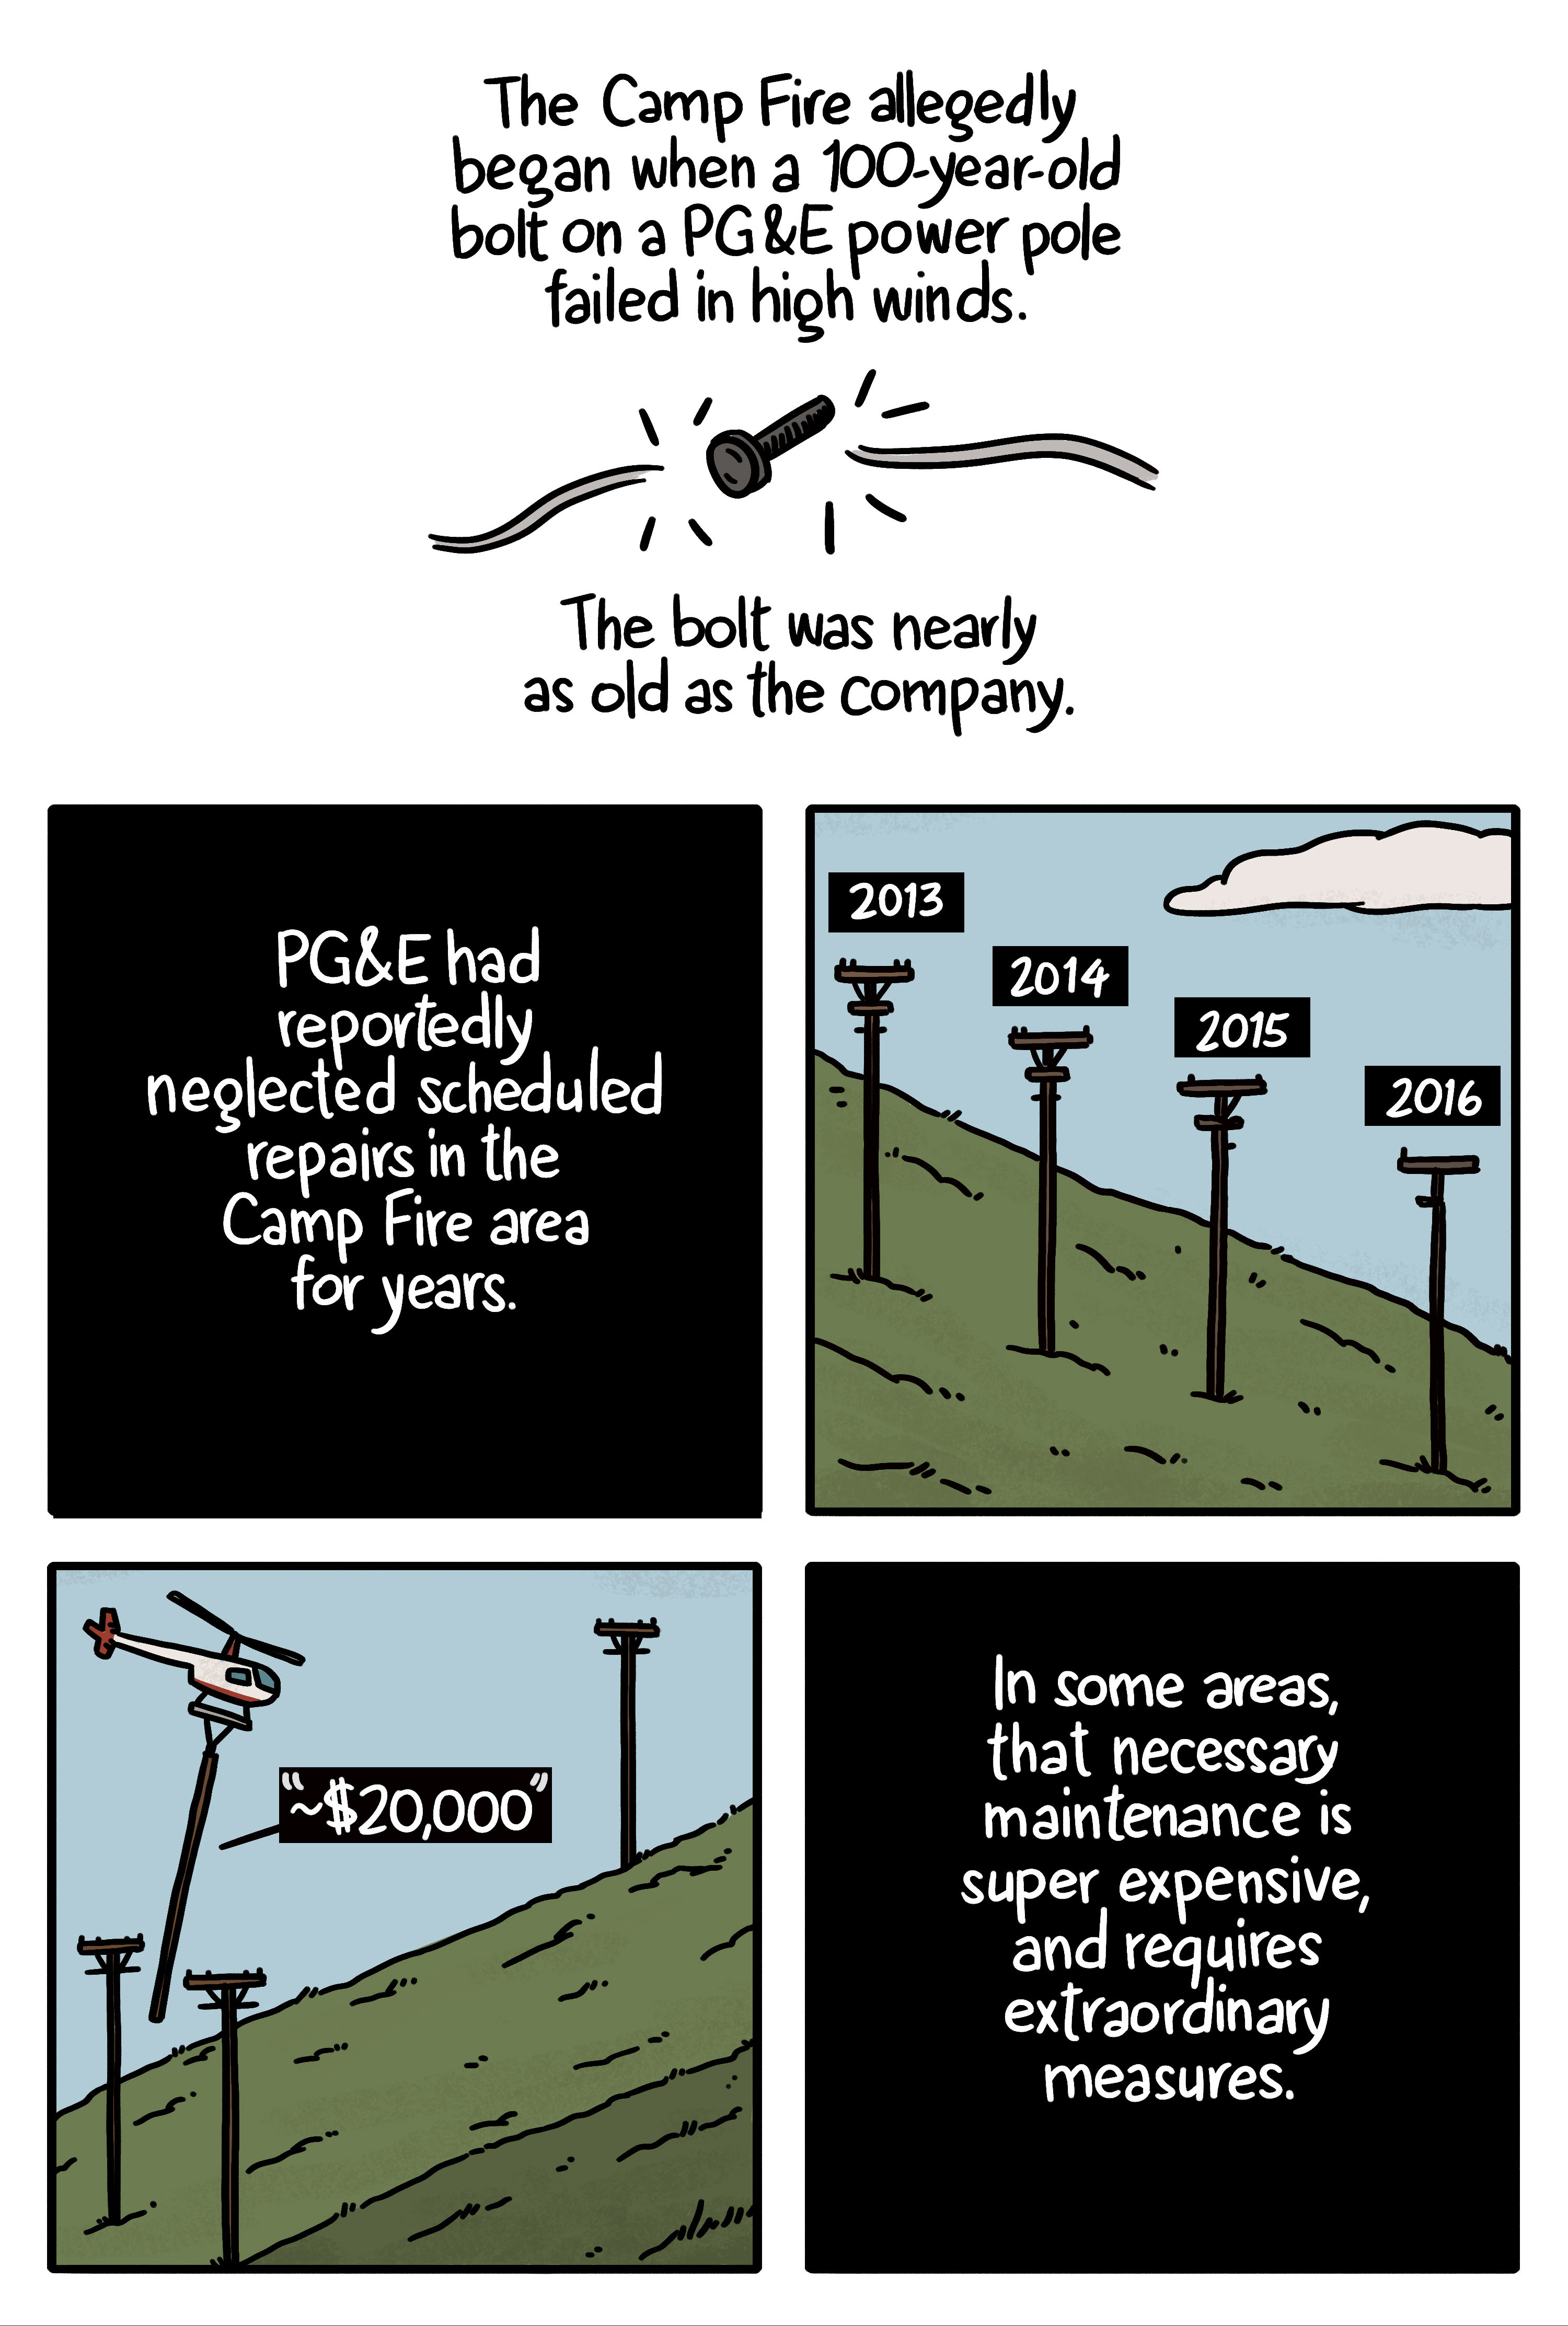 Comic showing that the destructive Camp Fire (named Camp Fire, not a campfire you sit around) was blamed on a 100-year-old bolt on a power line that failed in high winds. Each pole can cost up to $20,000 to replace, and PG&E has been accused of deferring essential maintenance to save money.